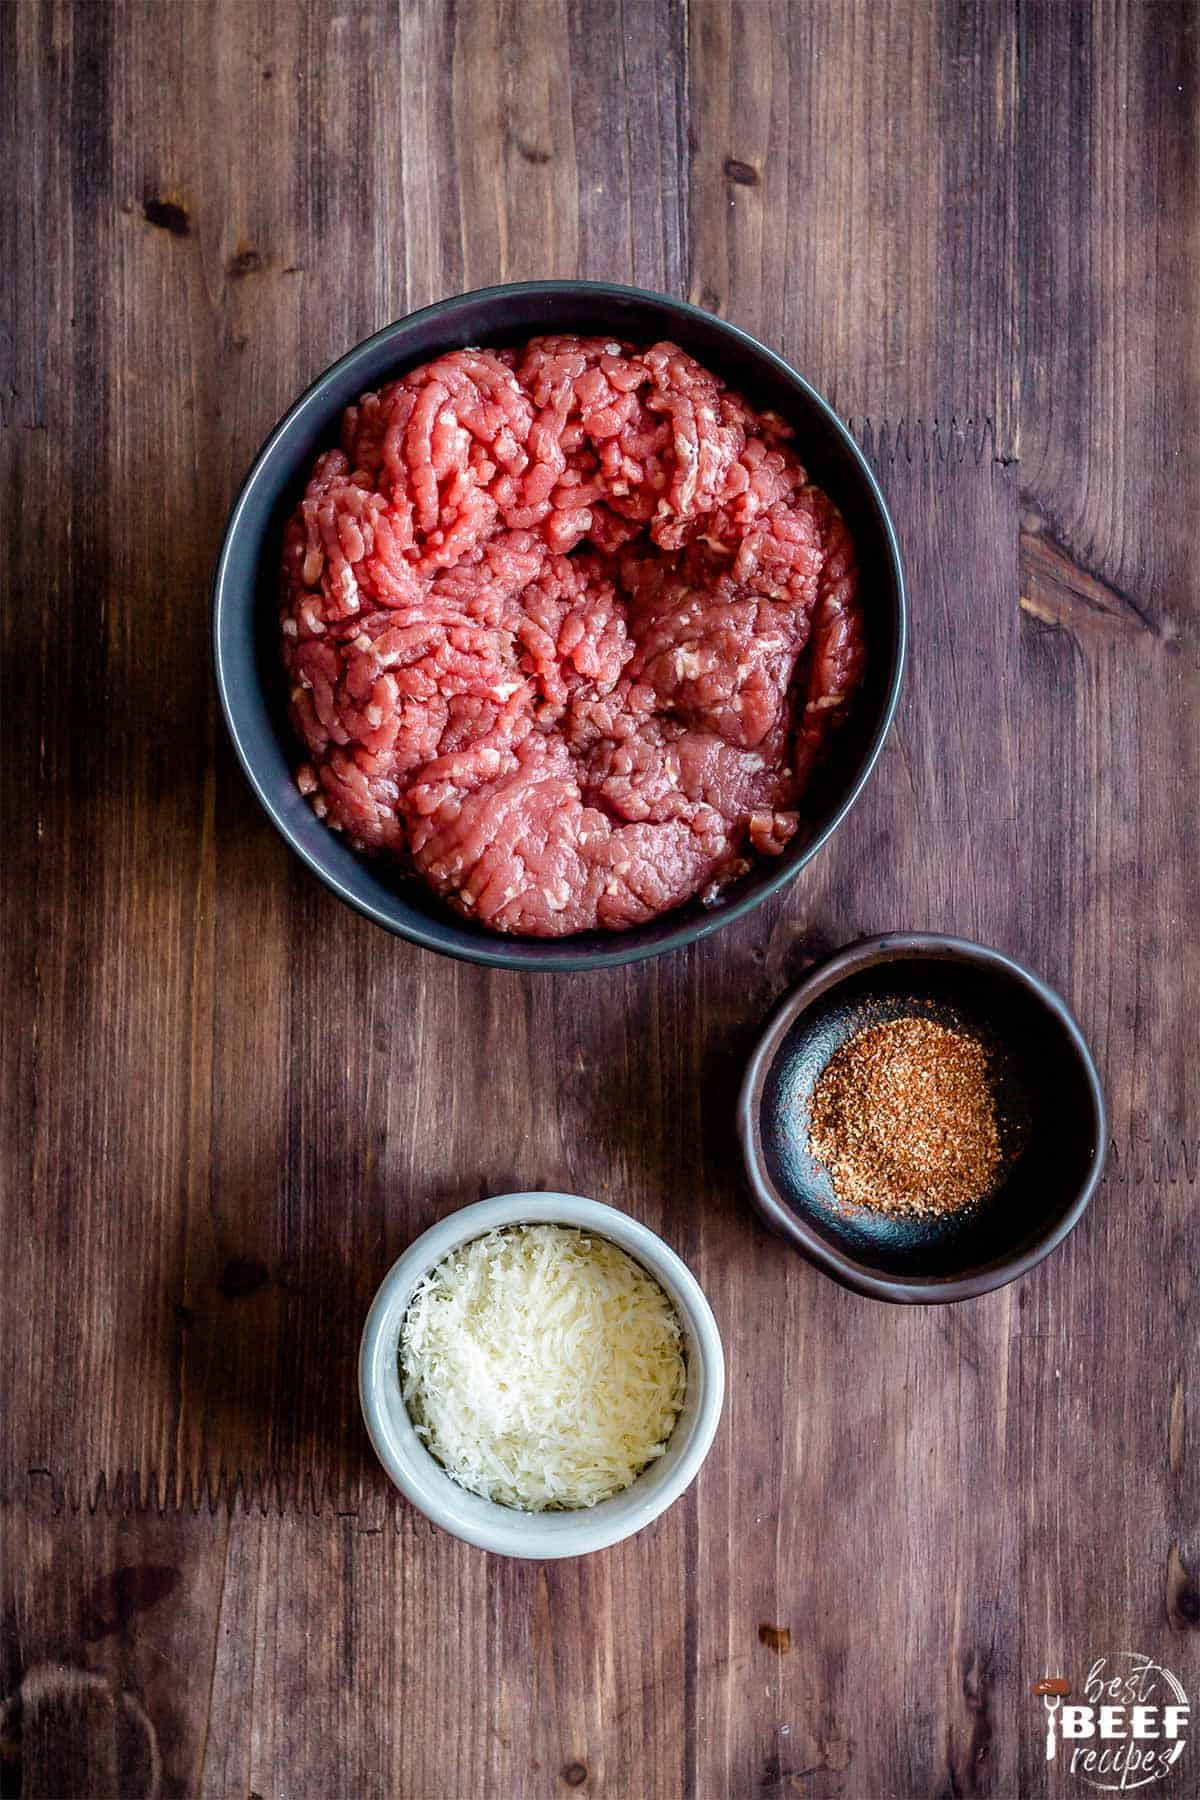 Ground beef, parmesan, and seasoning in bowls